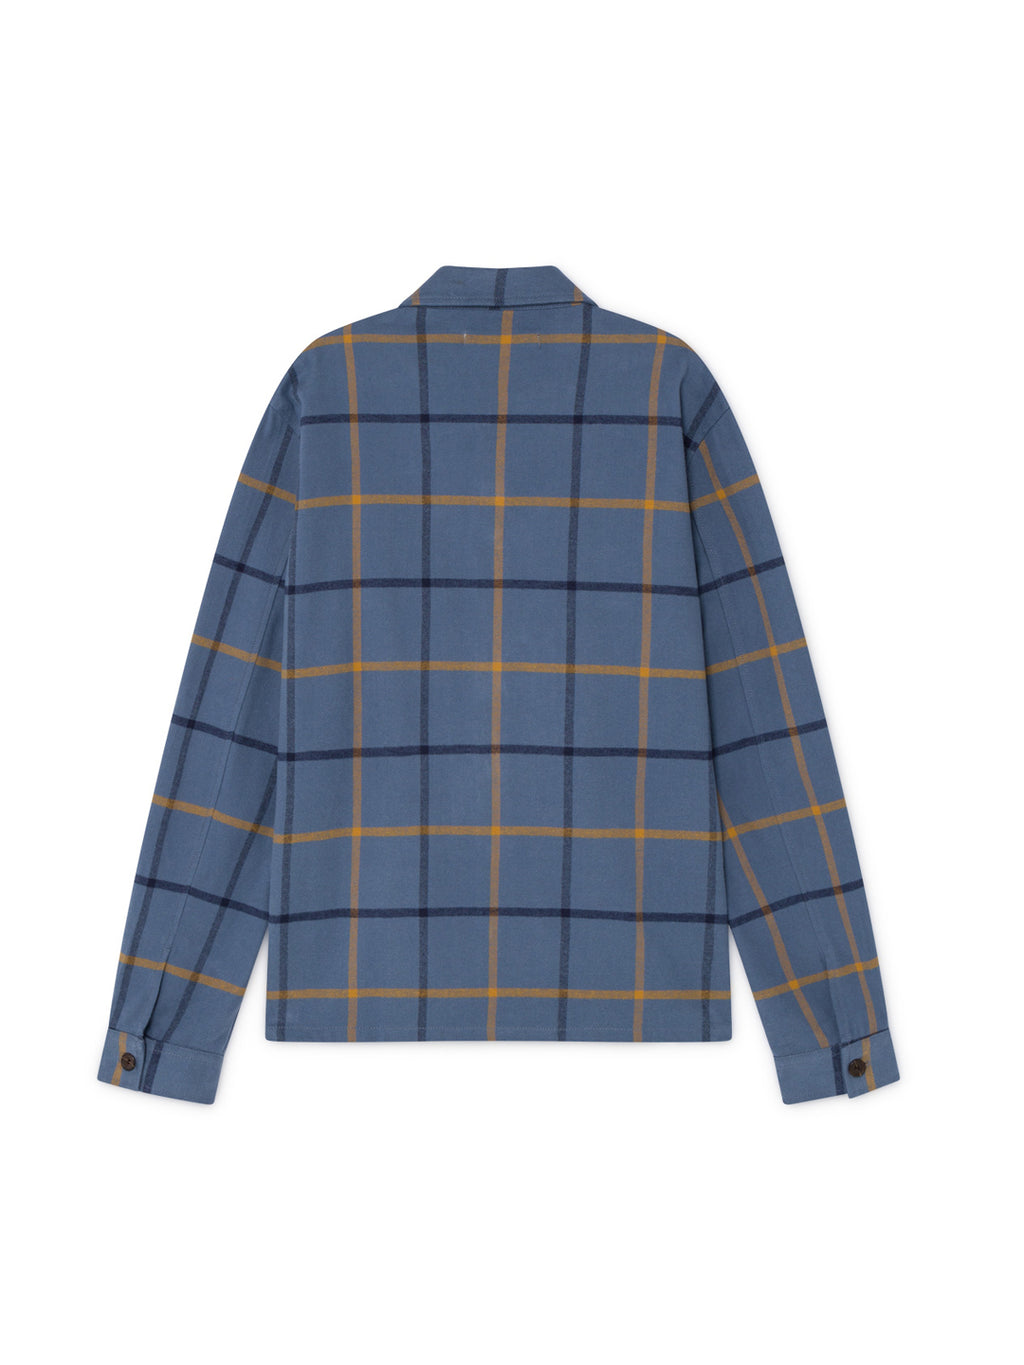 TWOTHIRDS Mens Shirt: Briñas - Blue Check back